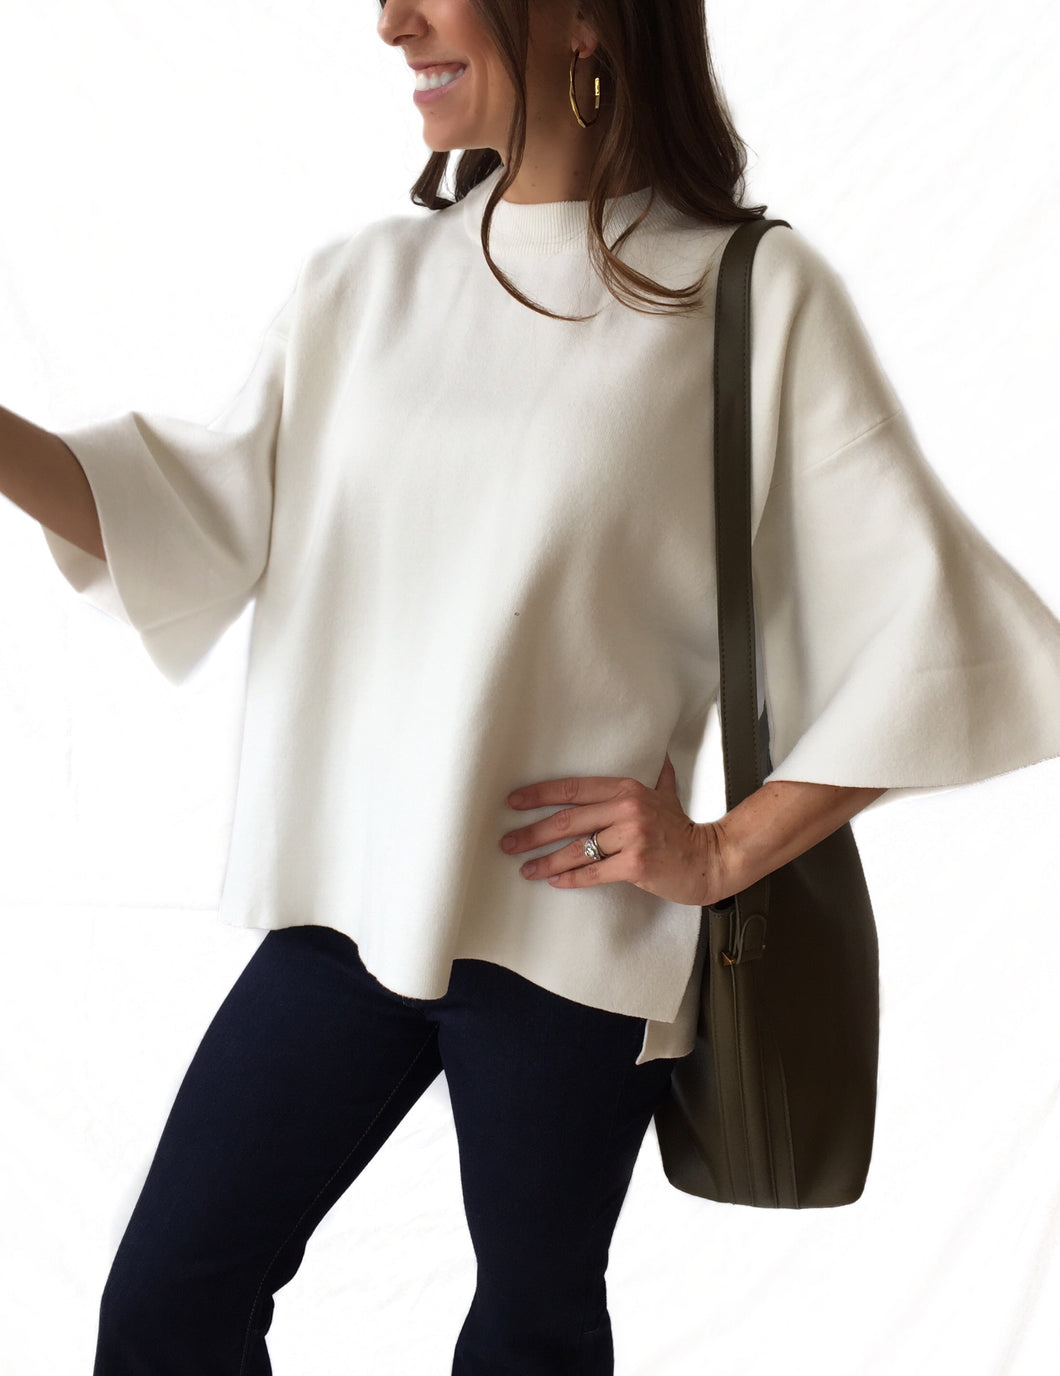 The Lucia Top